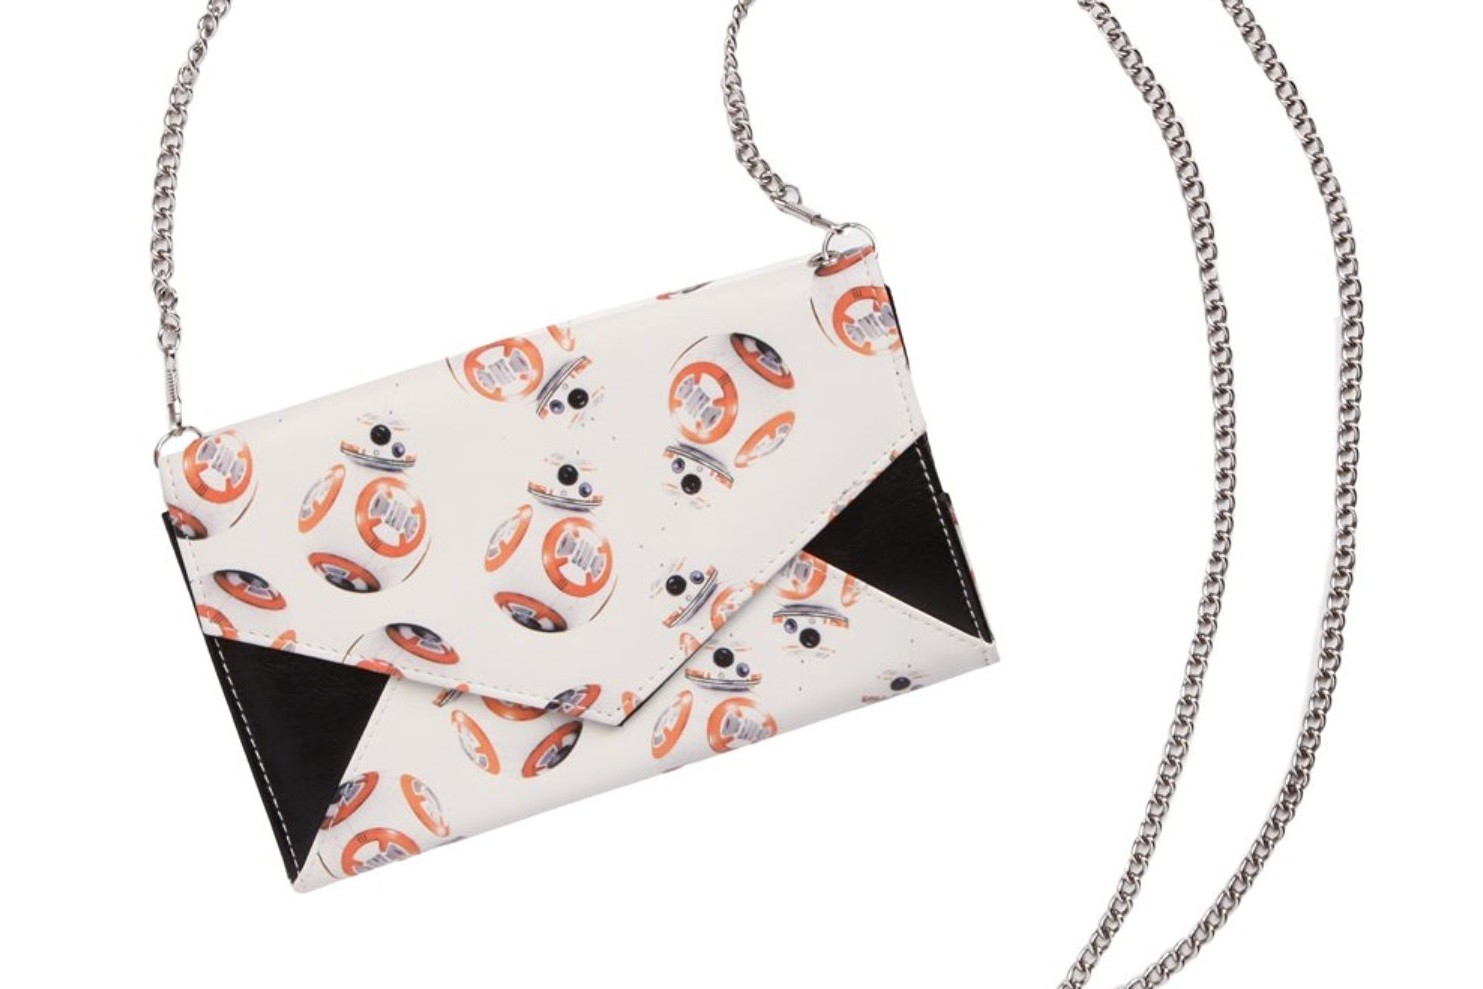 BB-8 envelope clutch with shoulder chain